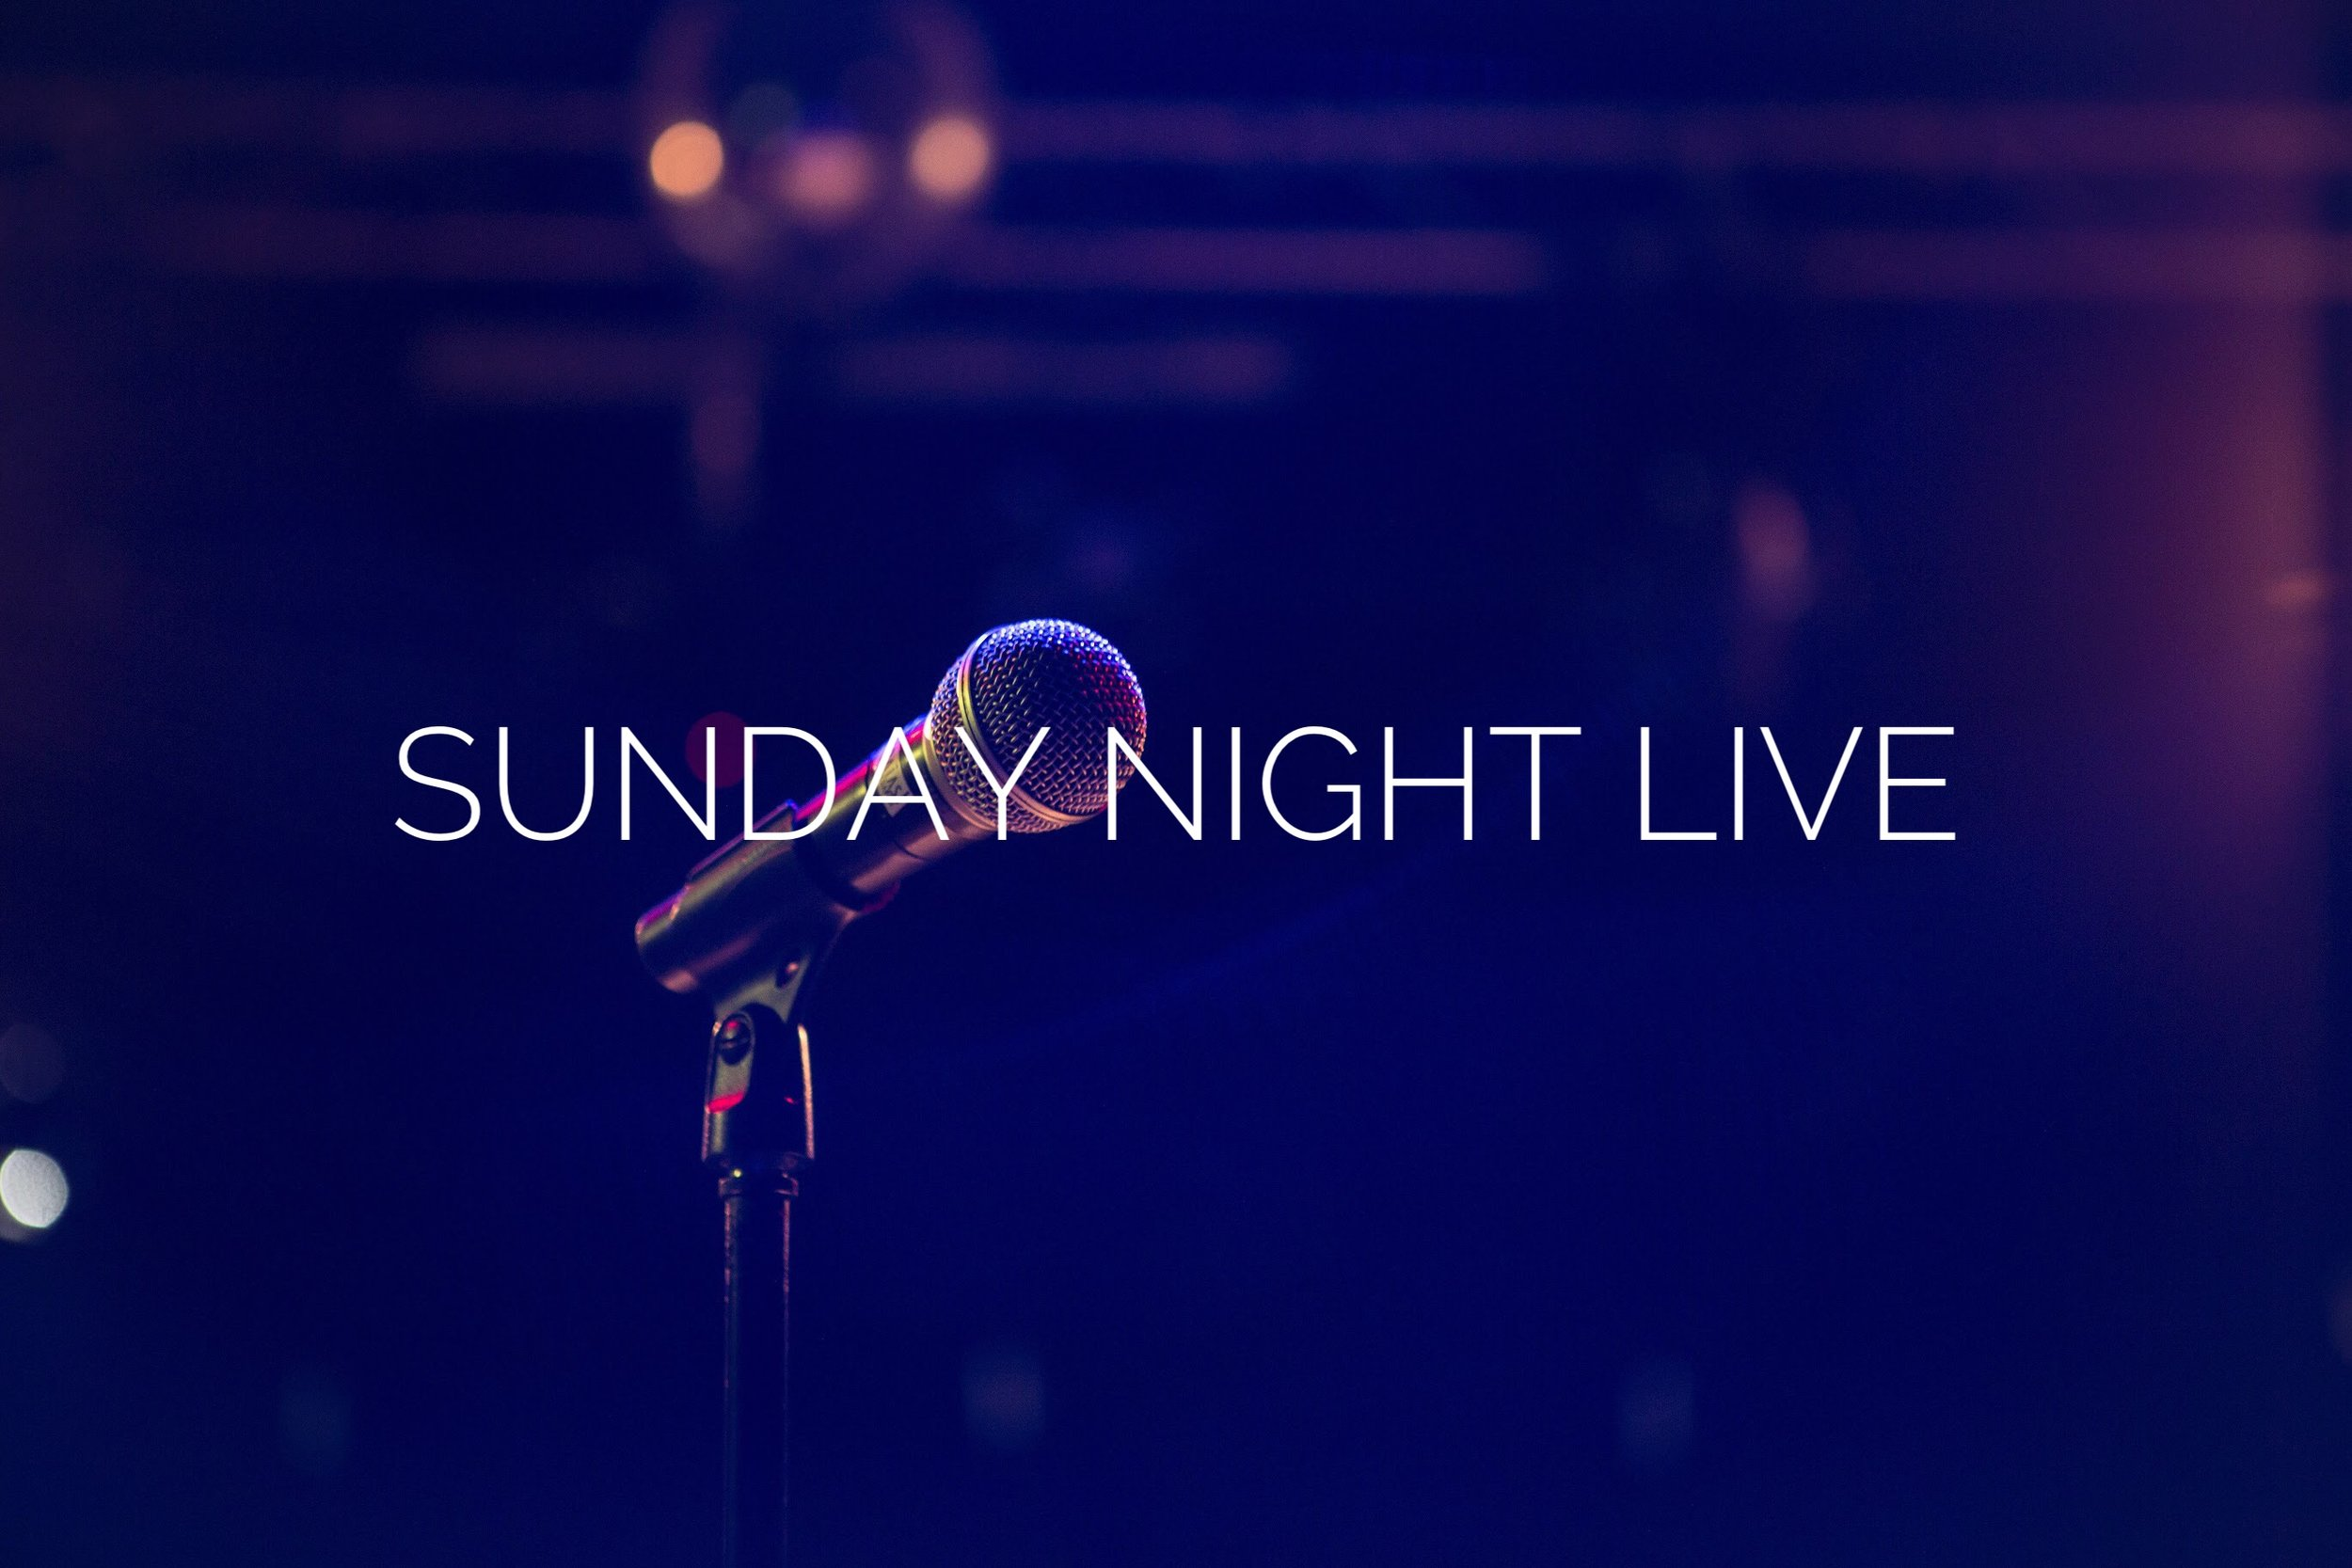 Sunday Night Live is a night of prayer and worship.